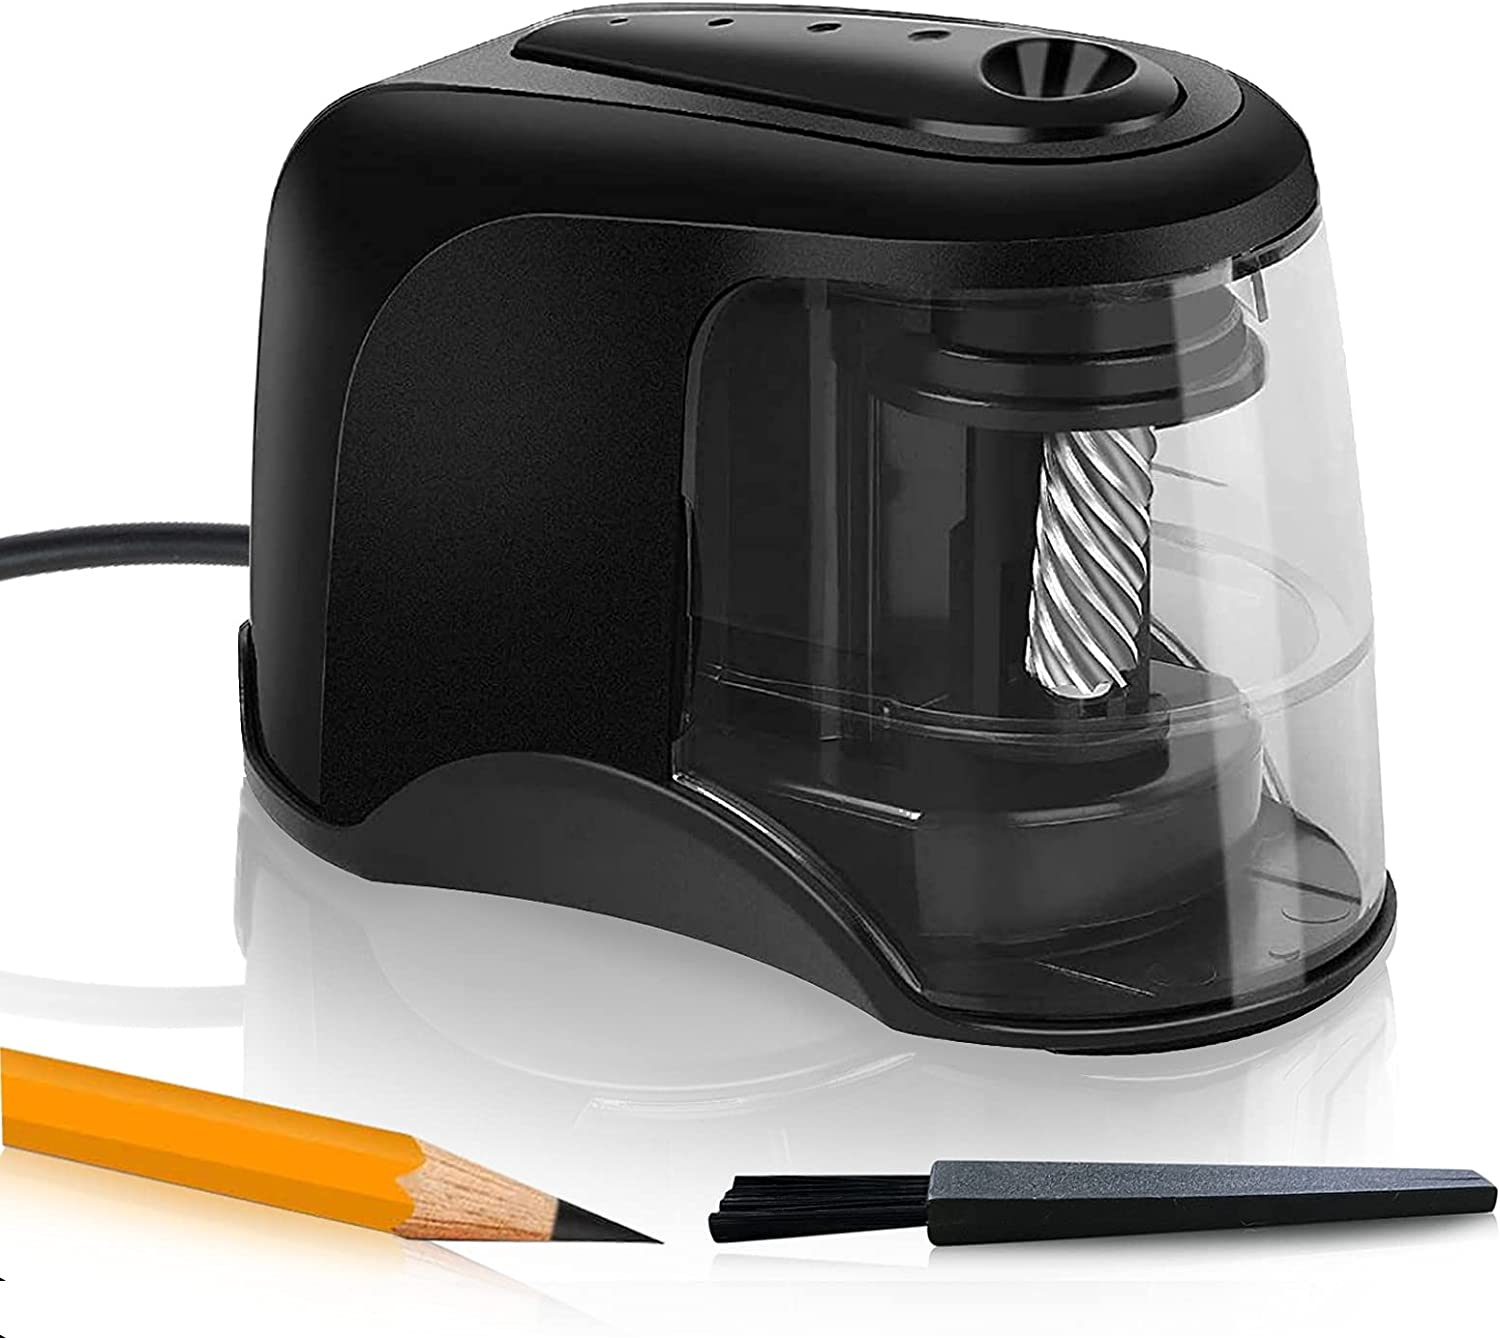 Pencil Sharpener Electric Pencil Sharpeners, Heavy Duty Helical Blade to Fast Sharpen,Pencils Sharpener for USB/Battery Operated, Suitable for No.2/Colored Pencils(6-8mm)/Classroom/Home/Office